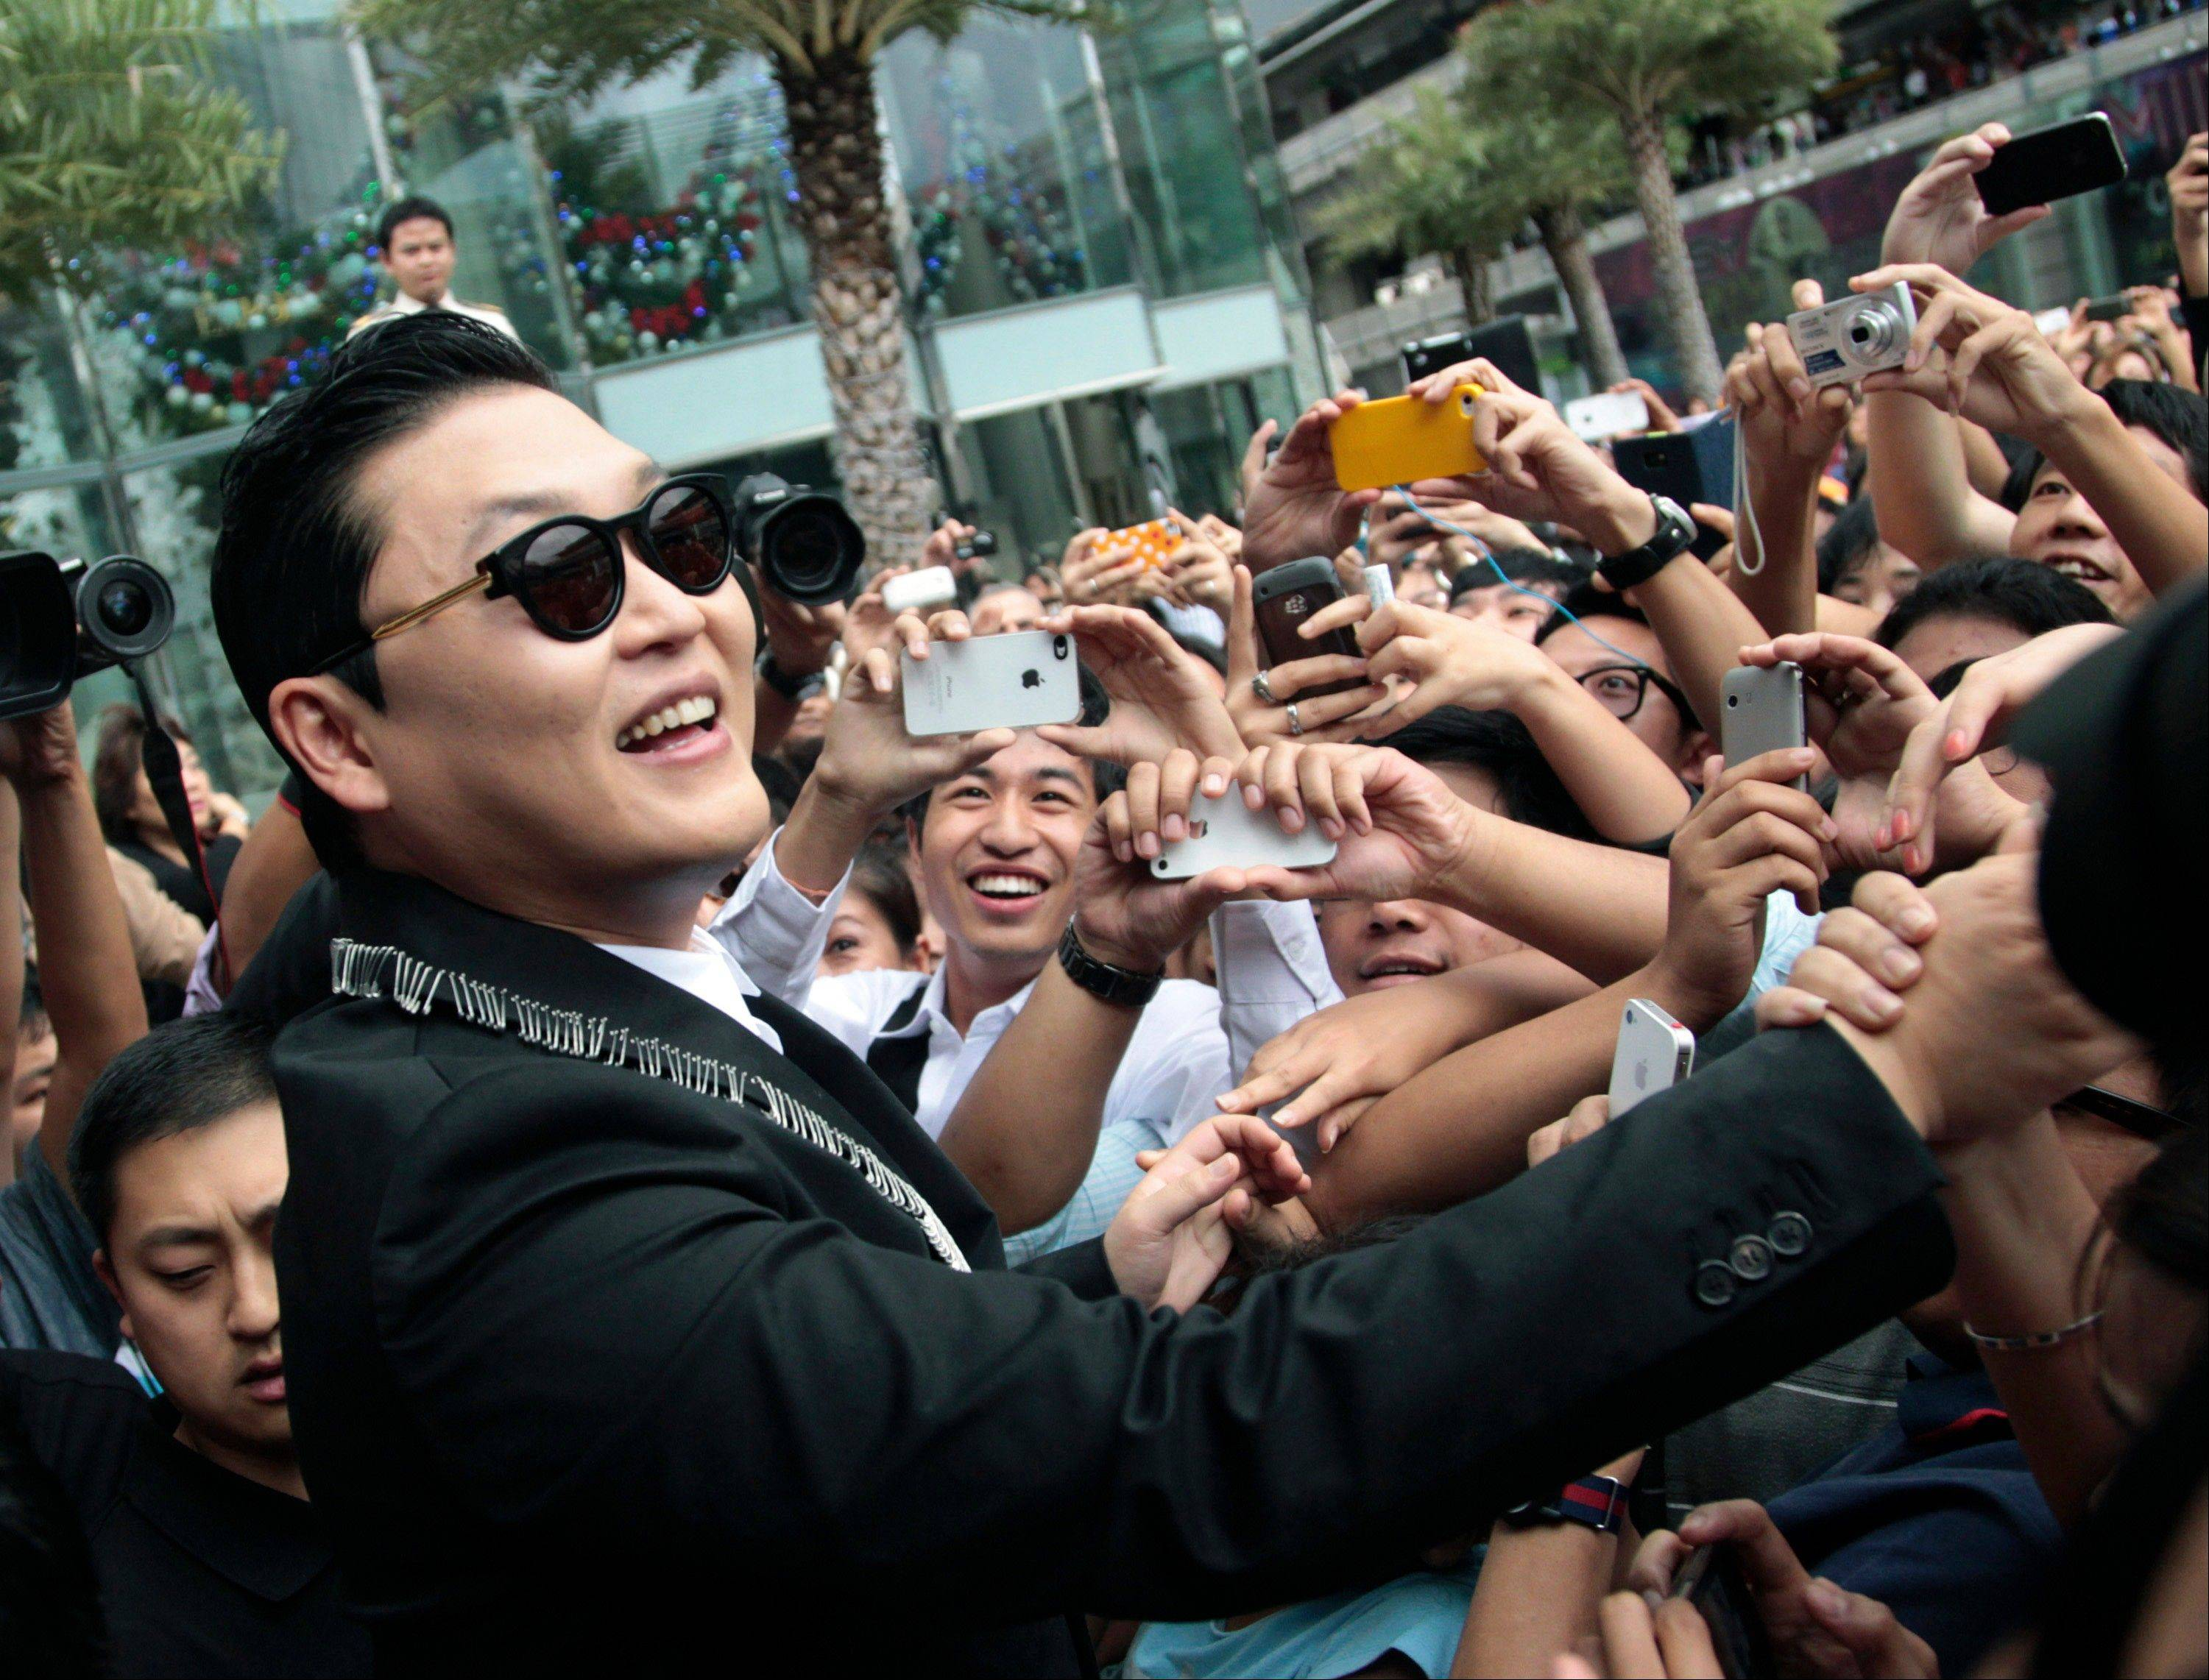 South Korean rapper PSY, who sings the popular �Gangnam Style,� greets Thai fans after a news conference in Bangkok, Thailand. As �Gangnam Style� gallops toward 1 billion views on YouTube, the first Asian pop artist to capture a massive global audience has gotten richer click by click.